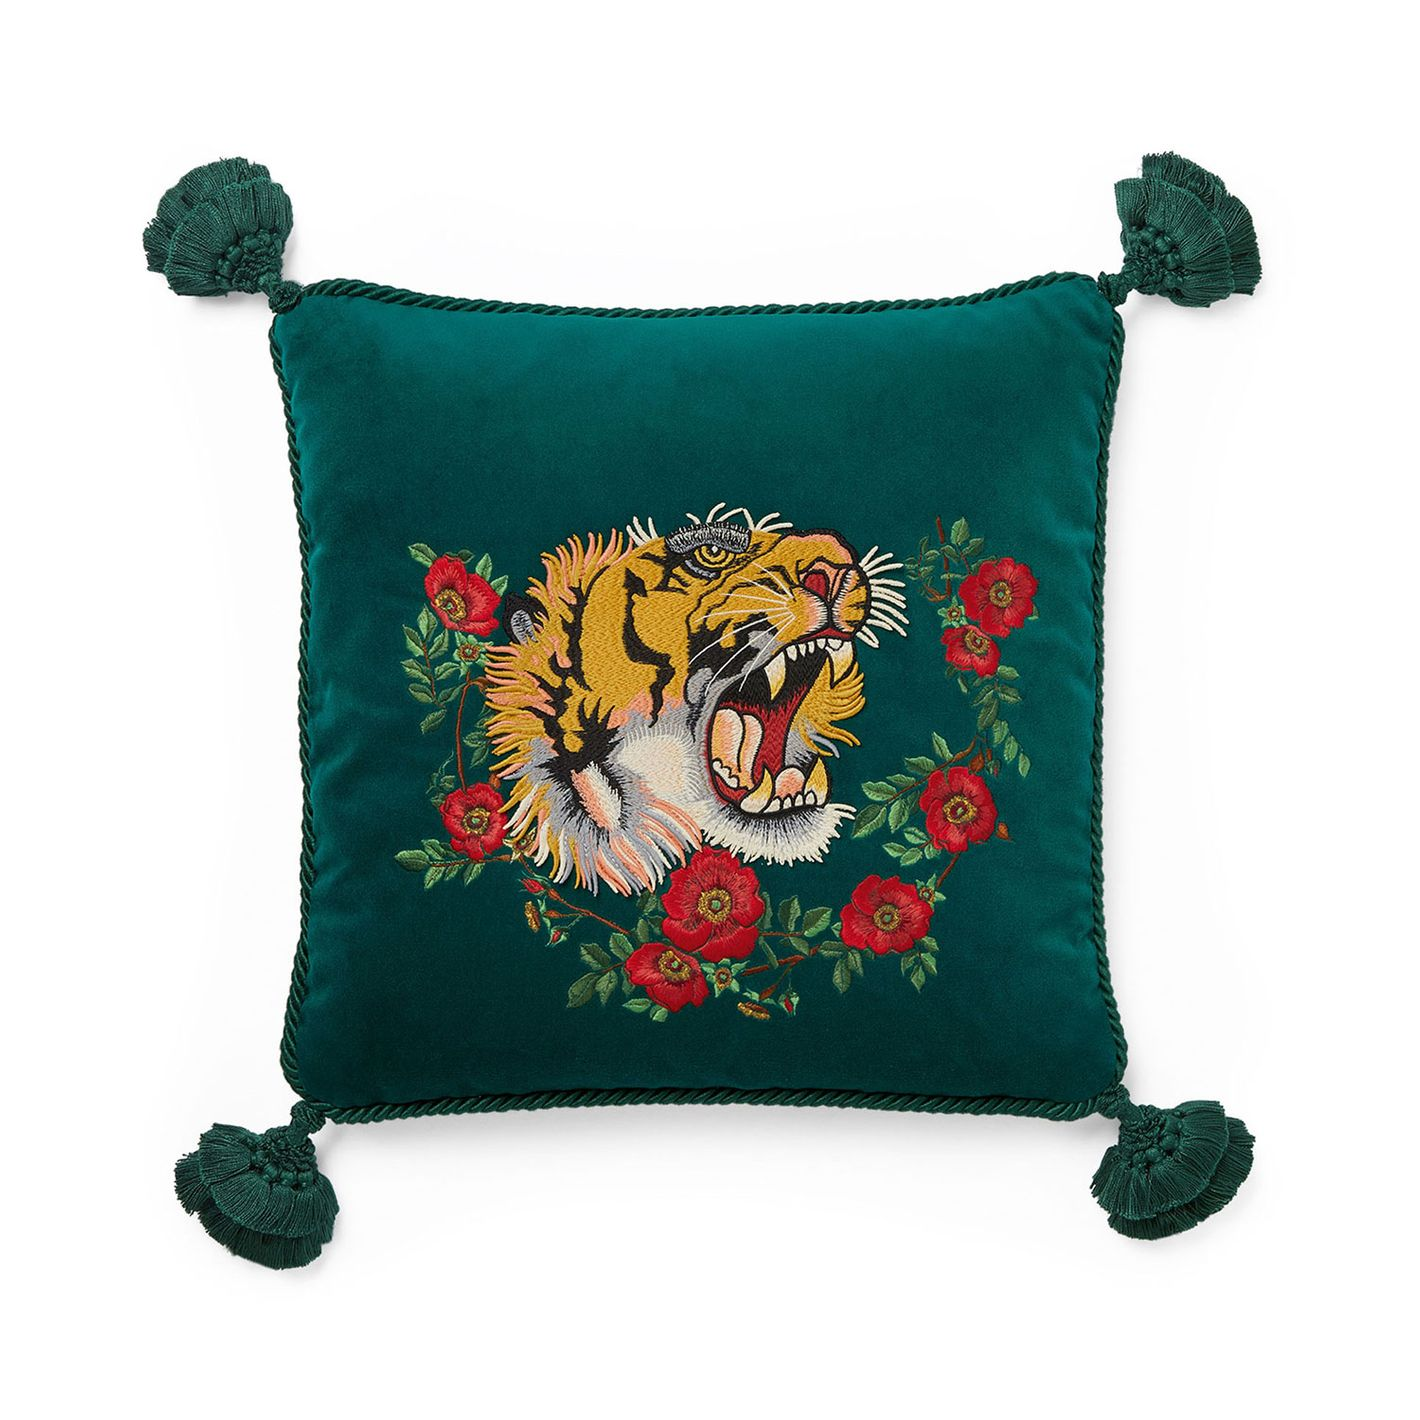 Gucci Velvet Cushion With Tiger Embroidery